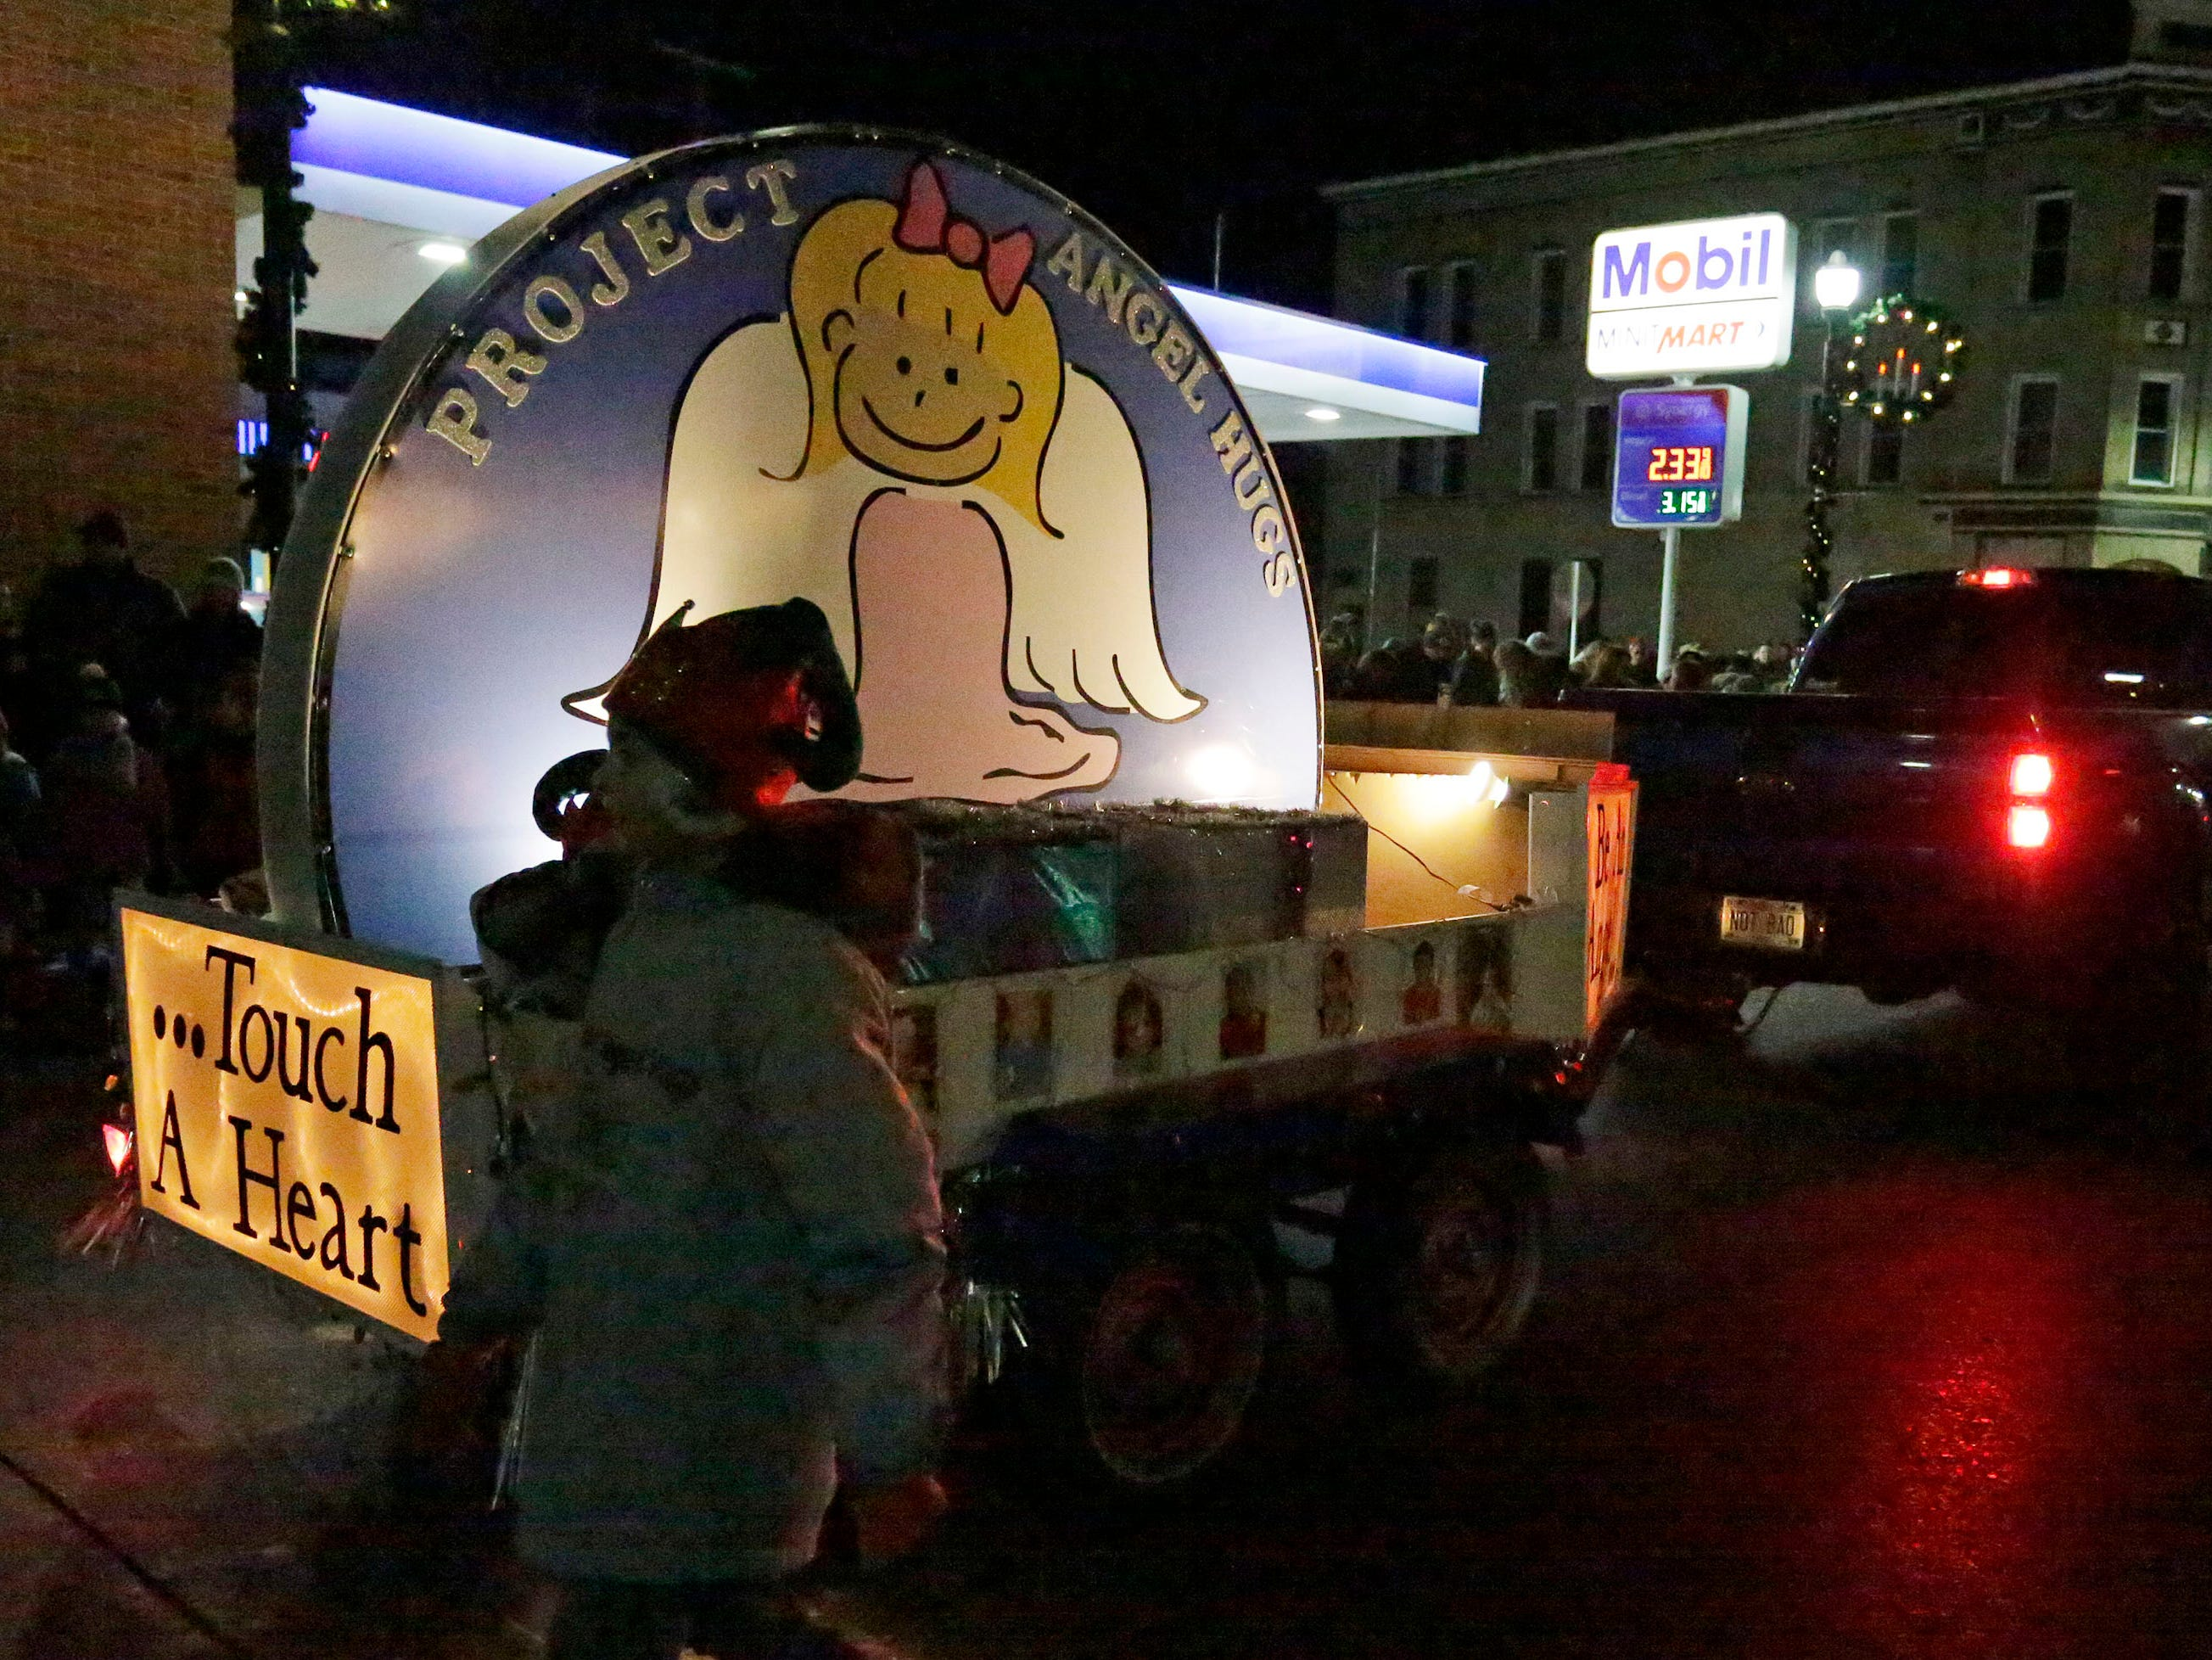 Scenes from the Plymouth Christmas Parade, Friday, November 23, 2018, in Plymouth, Wis.